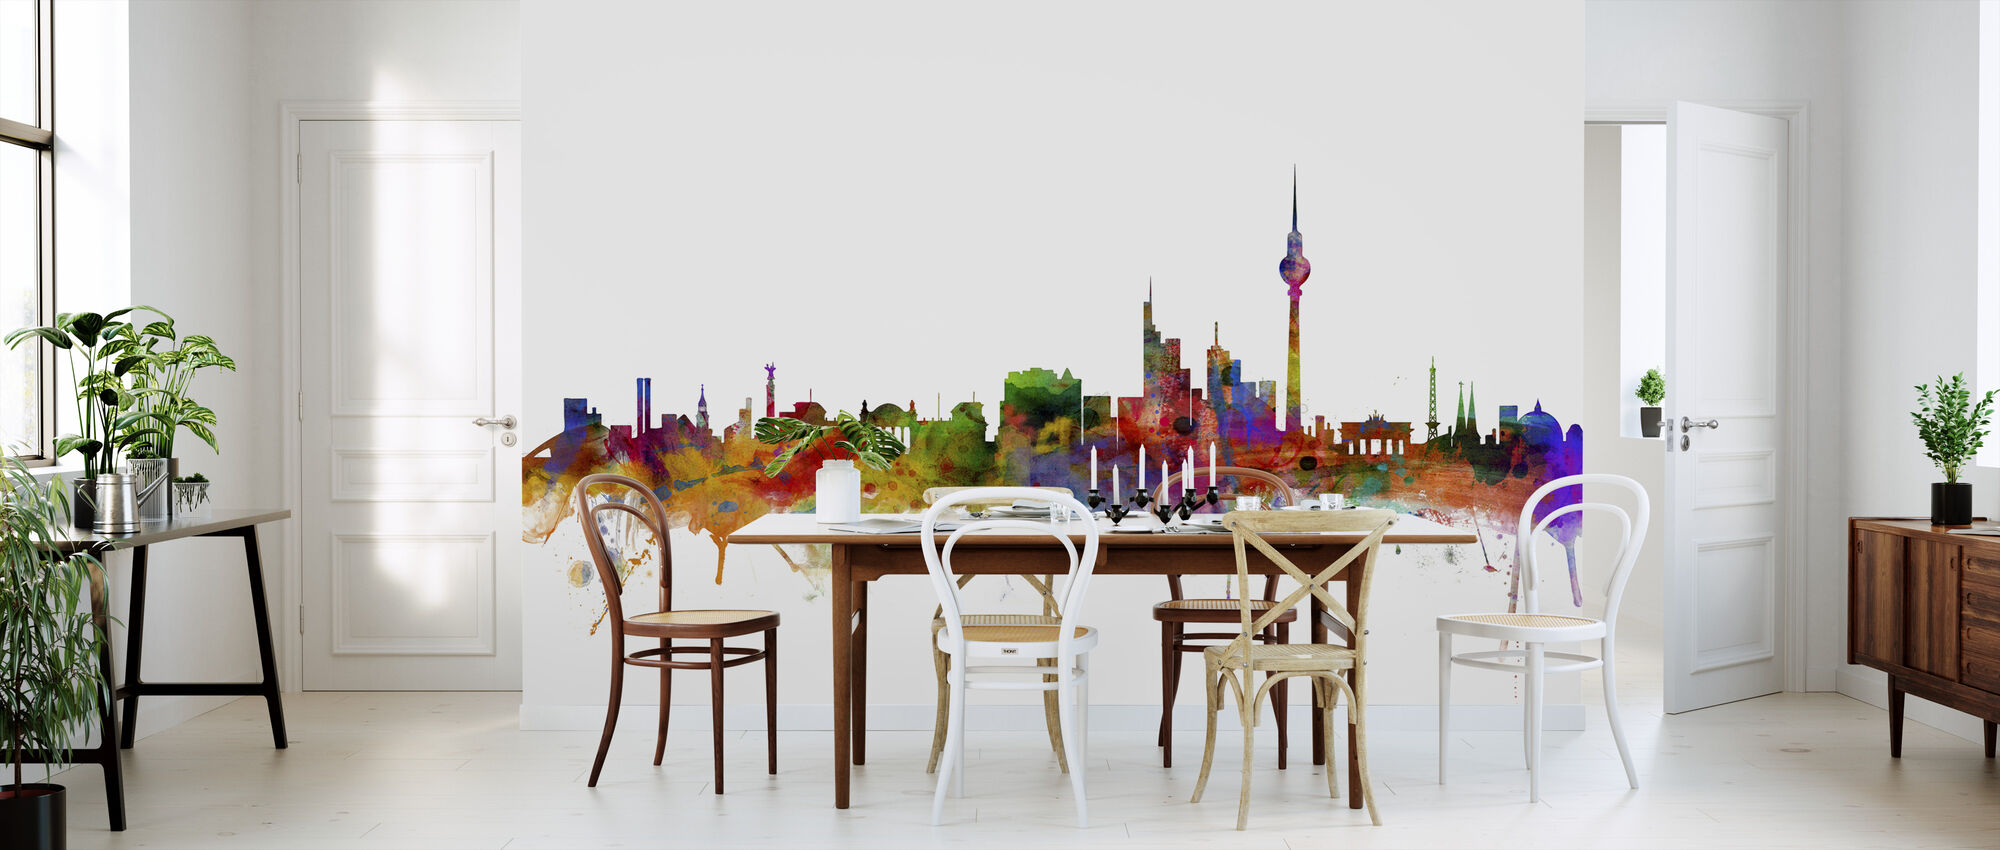 Berlin Skyline - Wallpaper - Kitchen